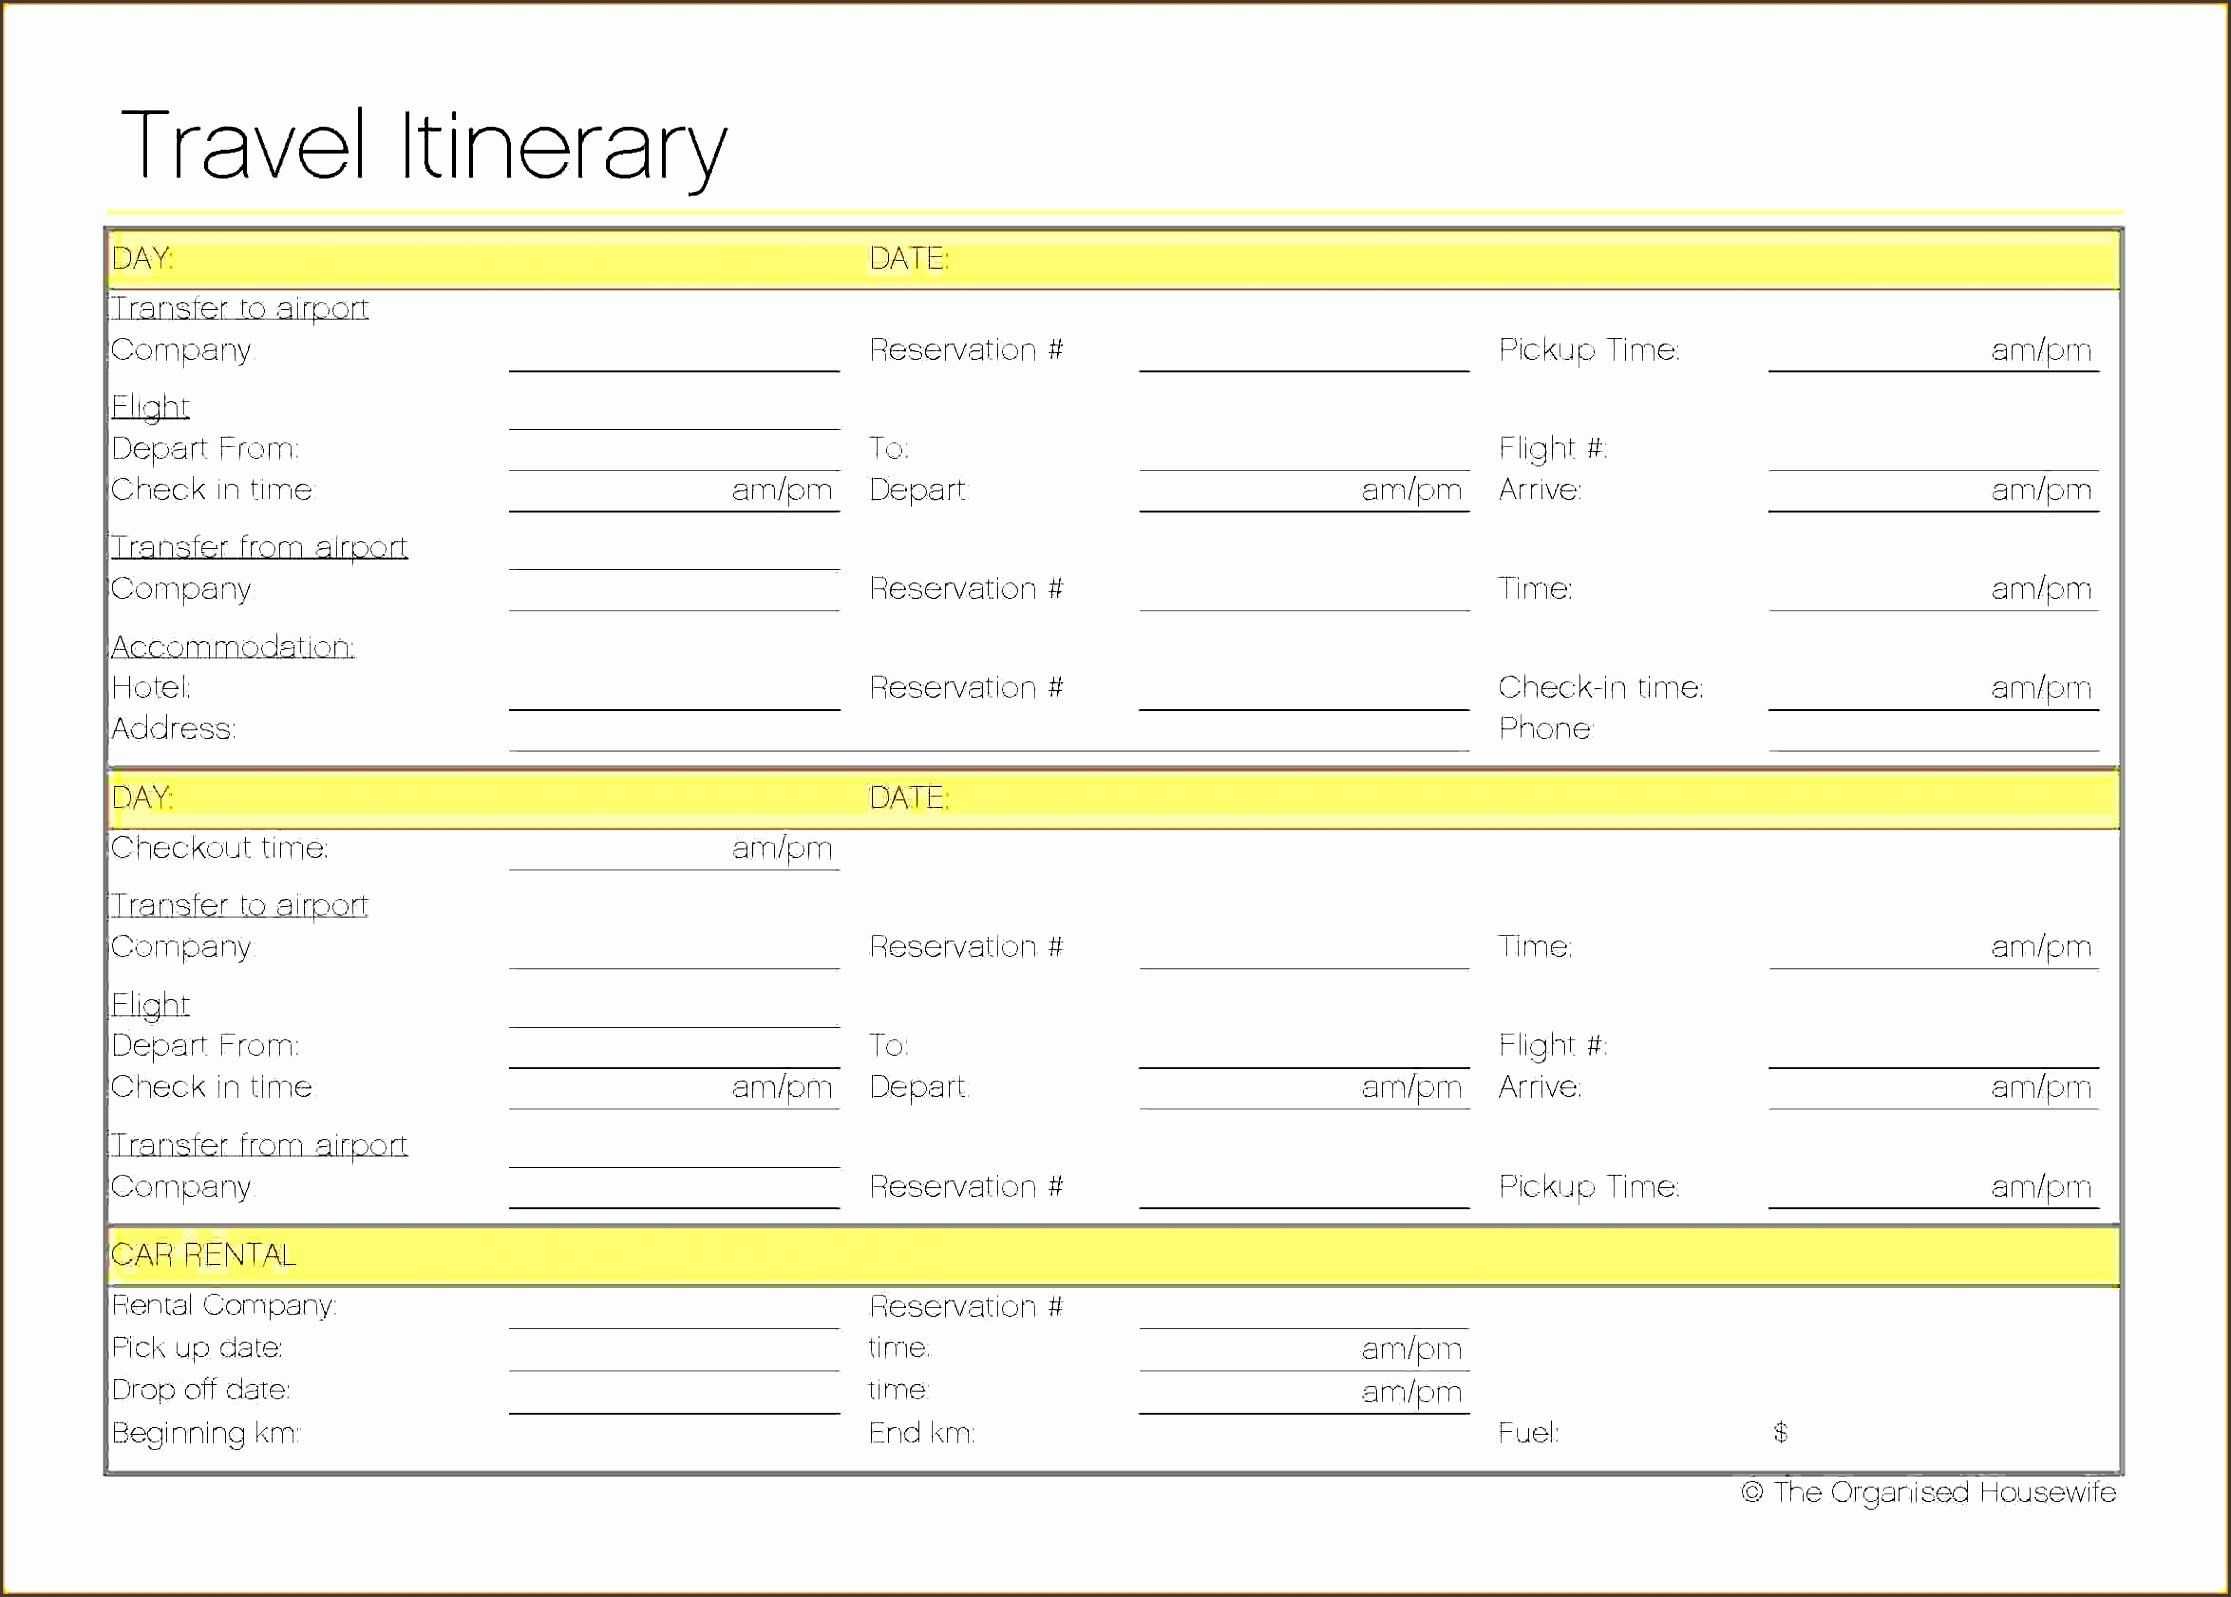 Executive Assistant Travel Itinerary Template Travel Itinerary